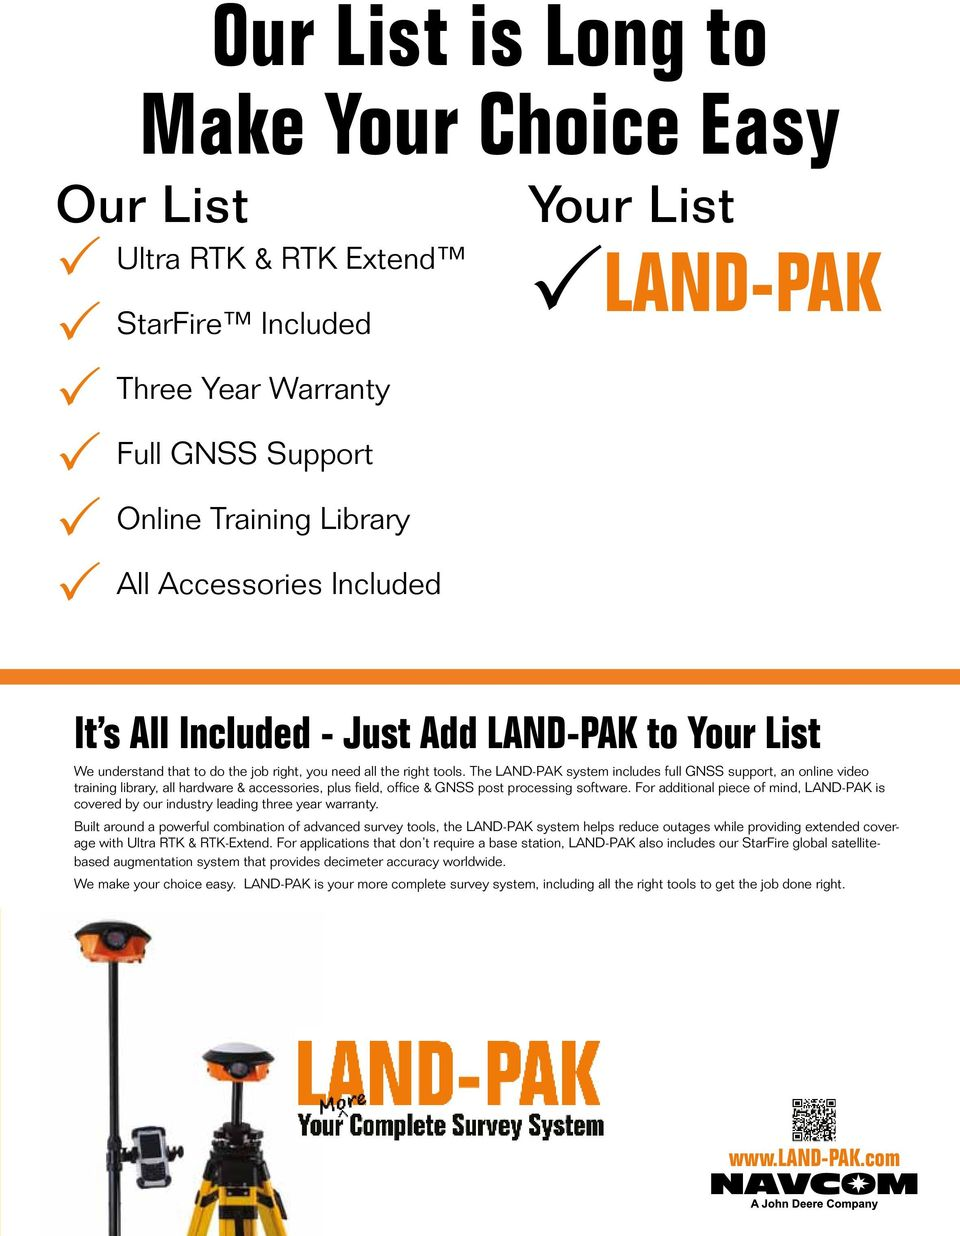 The LAND-PAK system includes full GNSS support, an online video training library, all hardware & accessories, plus field, office & GNSS post processing software.